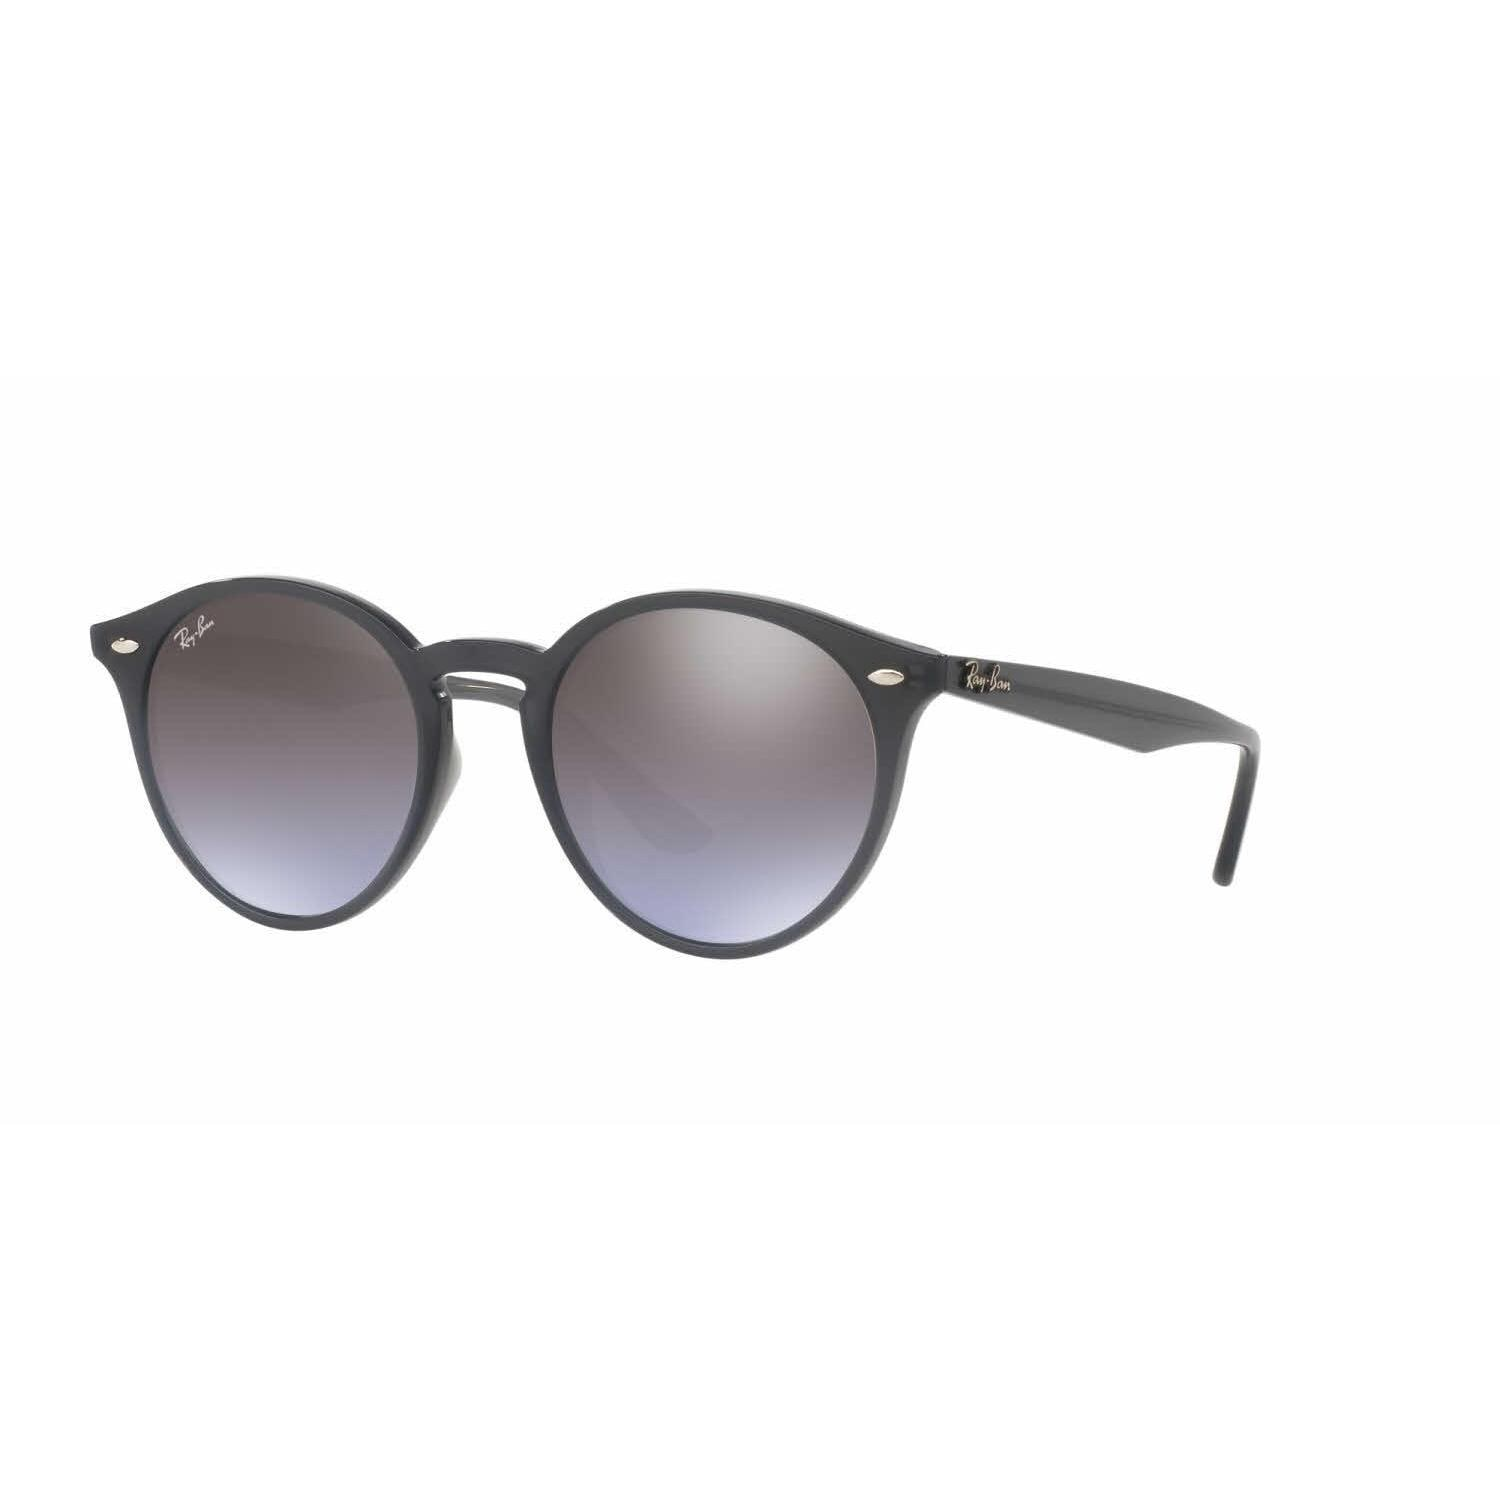 944387d060 Shop Ray Ban Mens RB2180F 623094 Grey Plastic Phantos Sunglasses - Violet -  Free Shipping Today - Overstock.com - 13467358